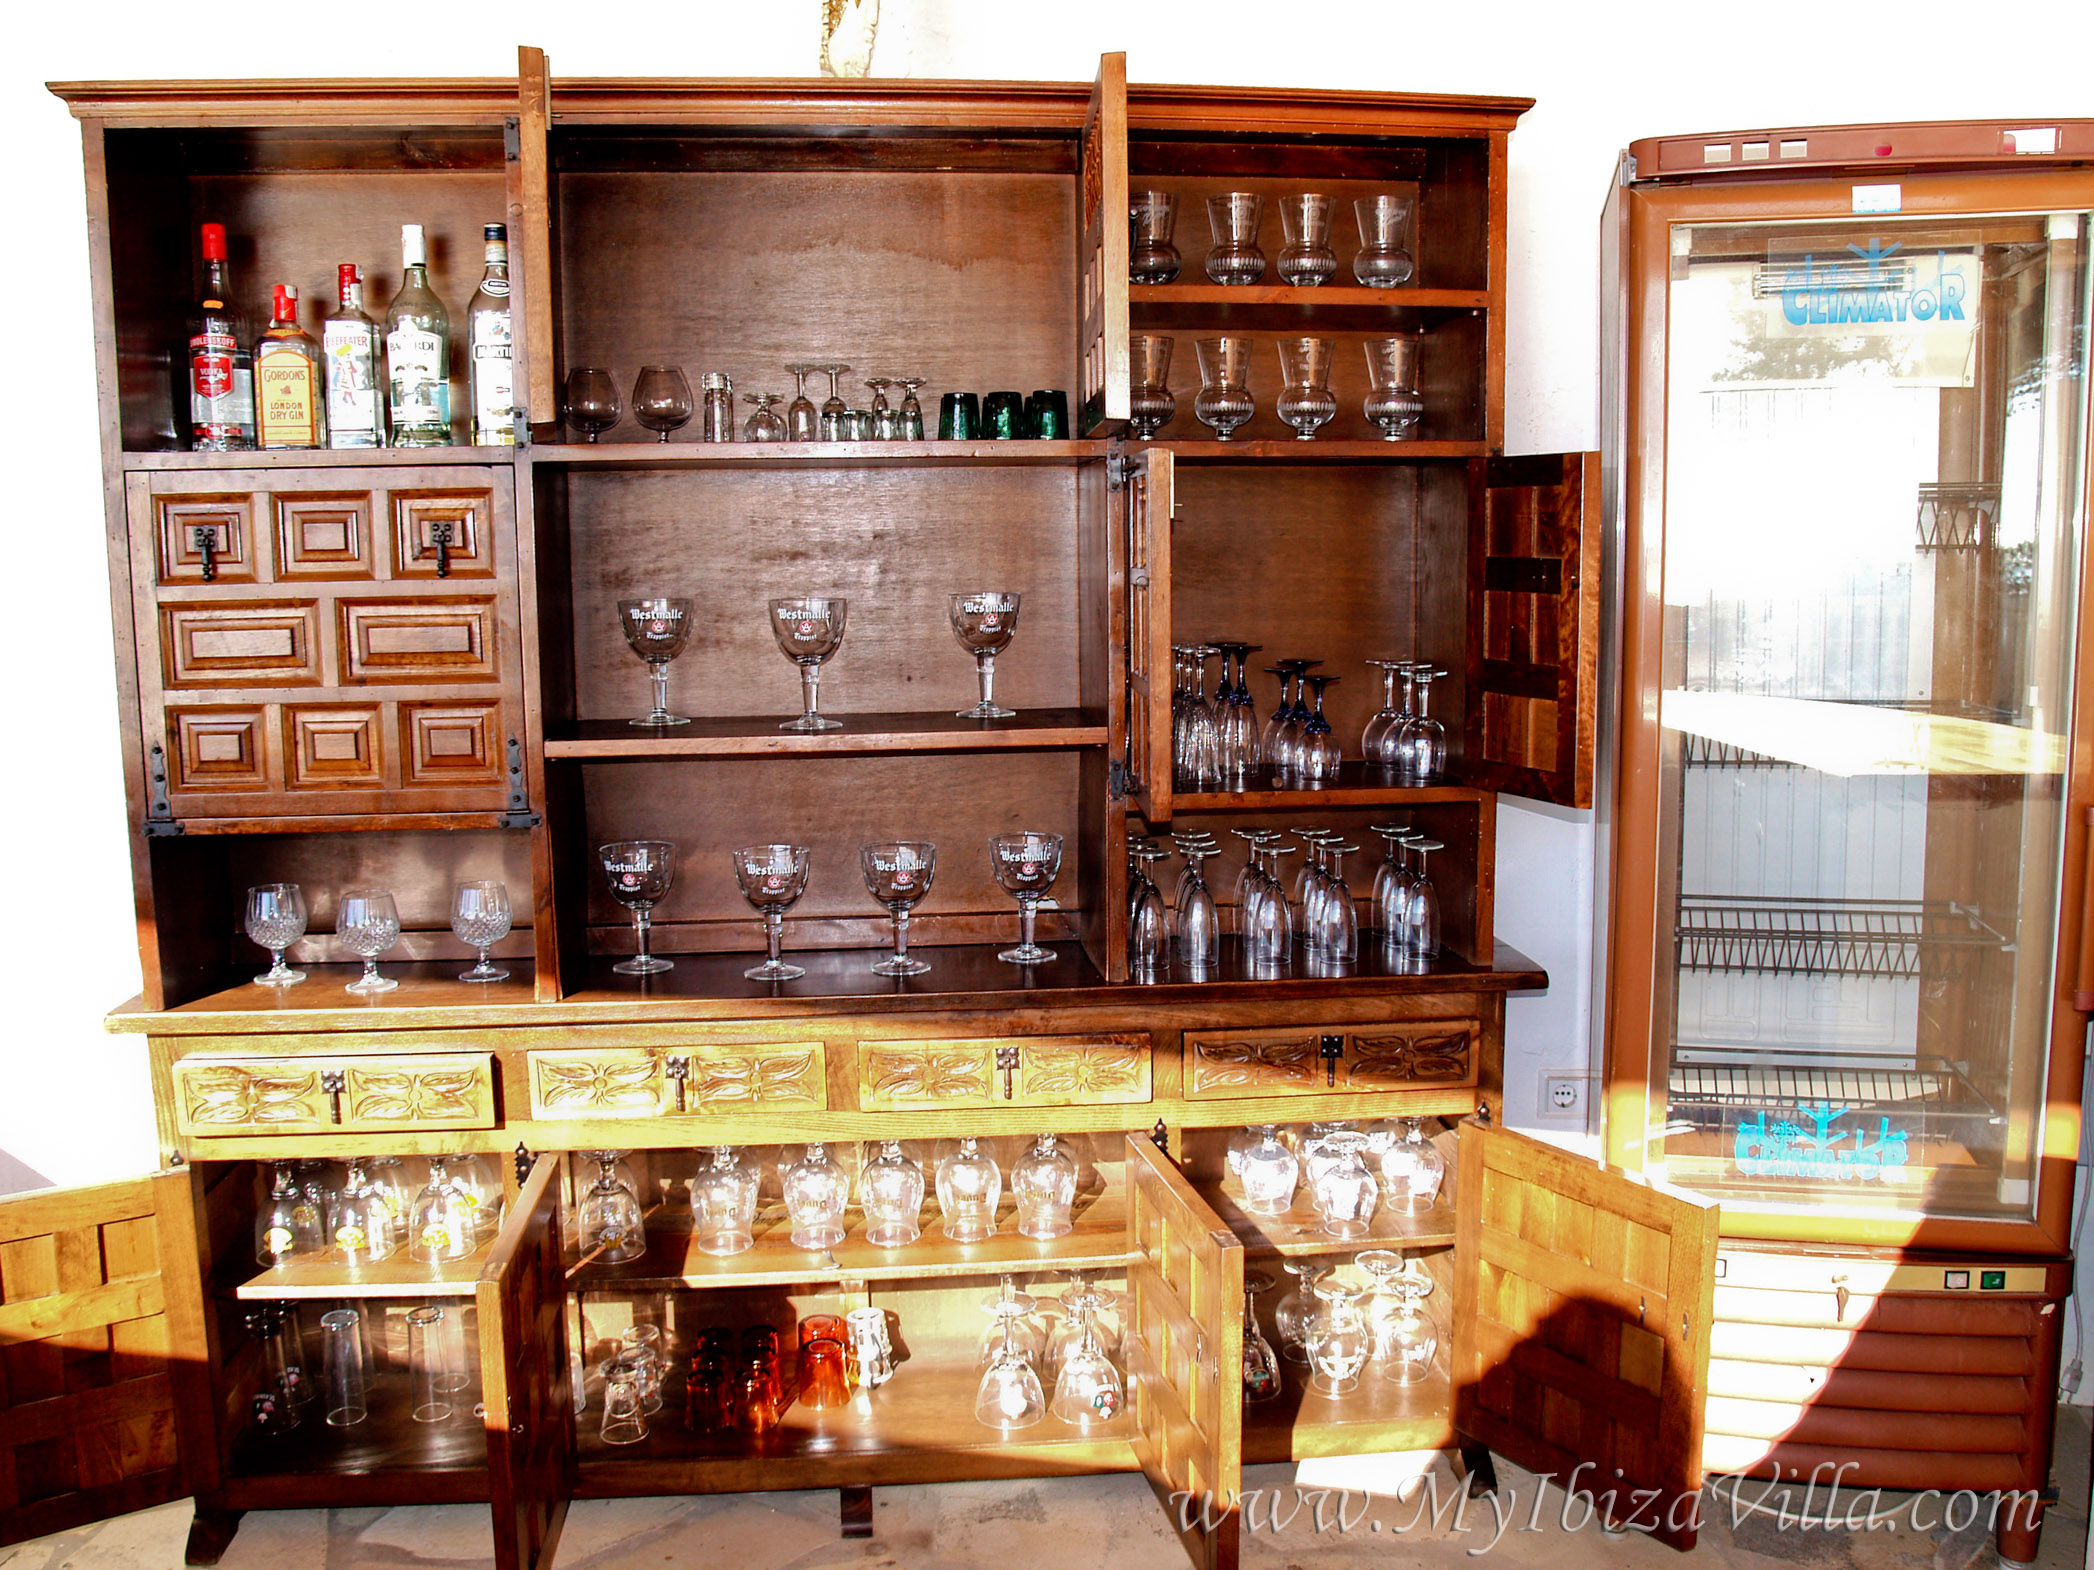 Cupboard with great variety of glasses behind the bar.